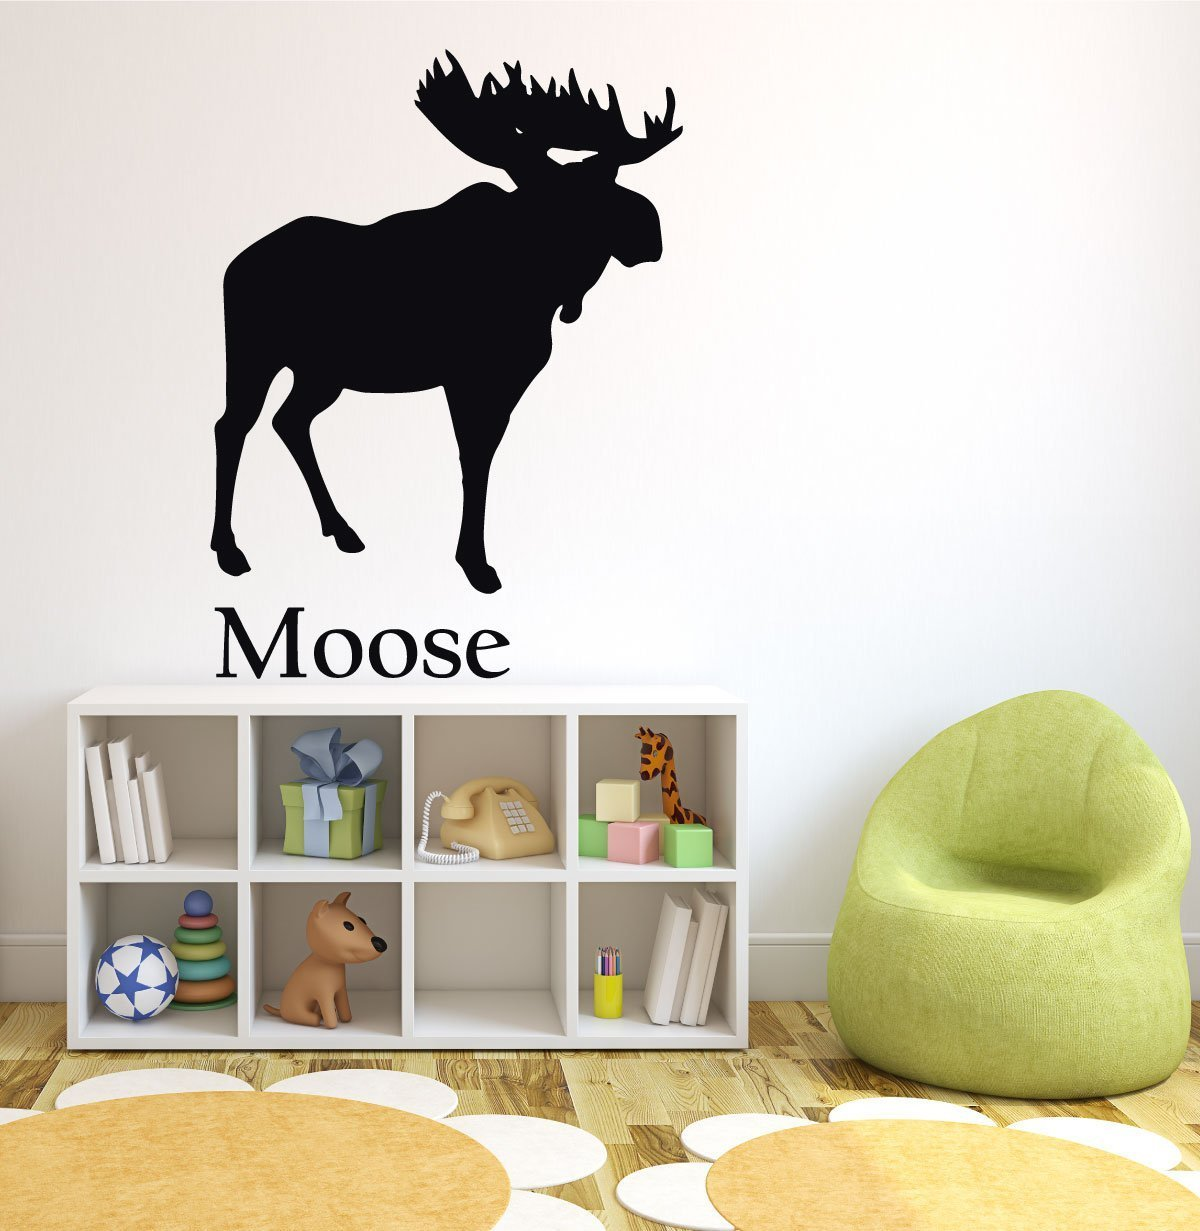 Forest Animal Wall Decals   Moose   North American Animals